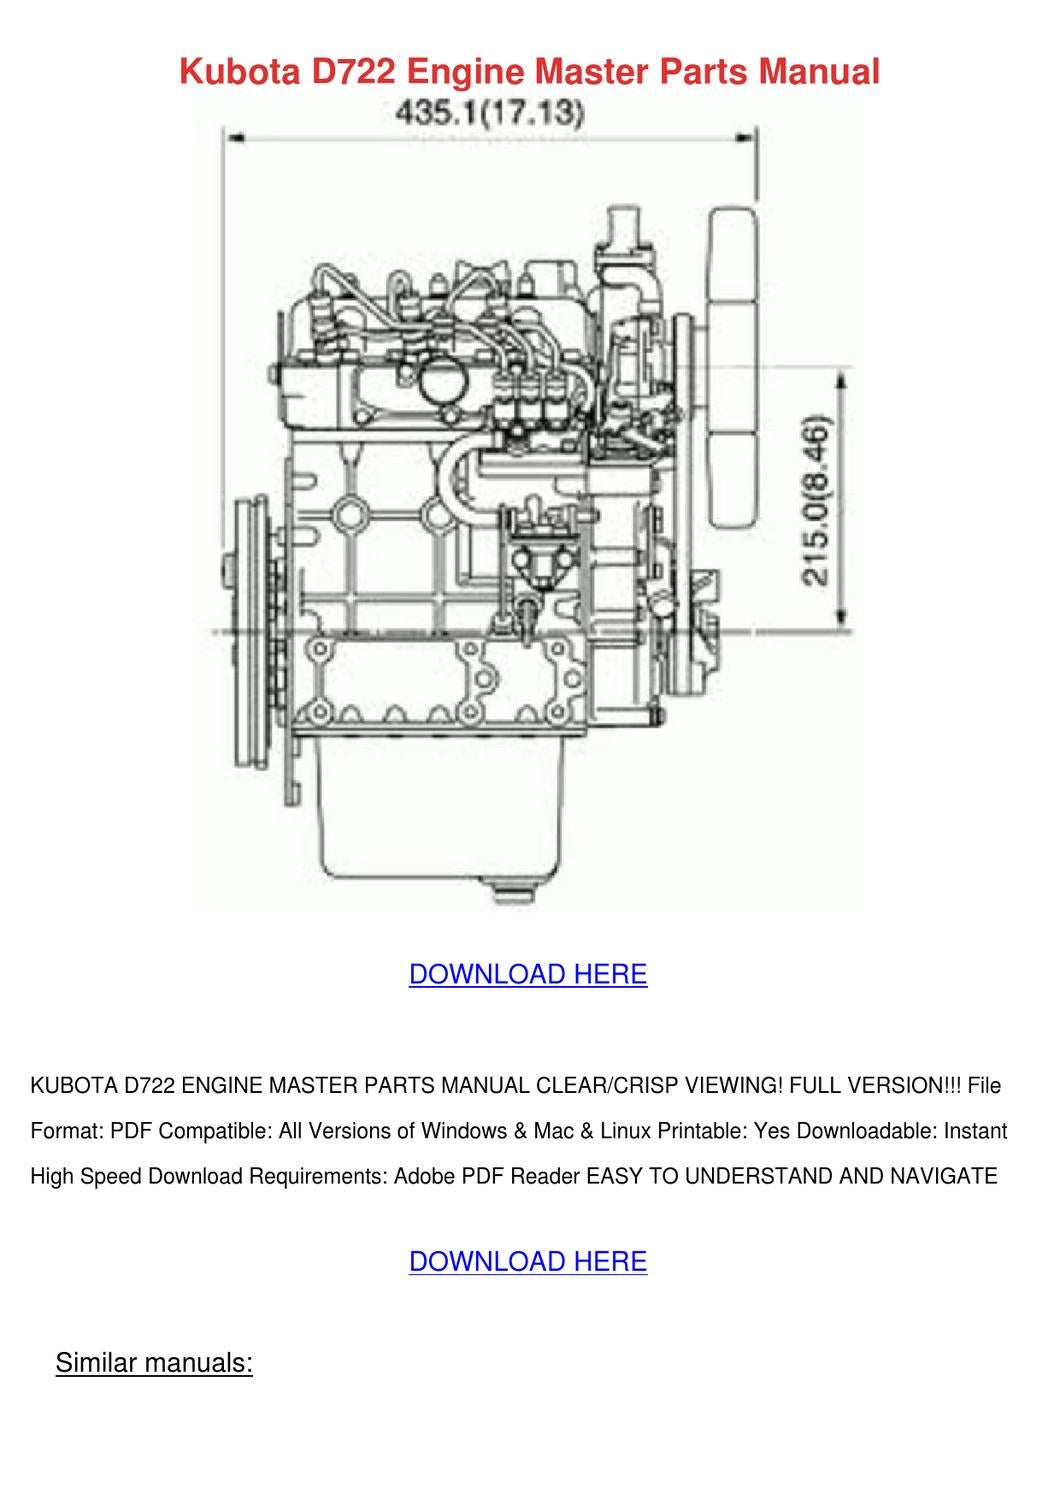 Kubota D722 Engine Master Parts Manual By Elanacrutchfield